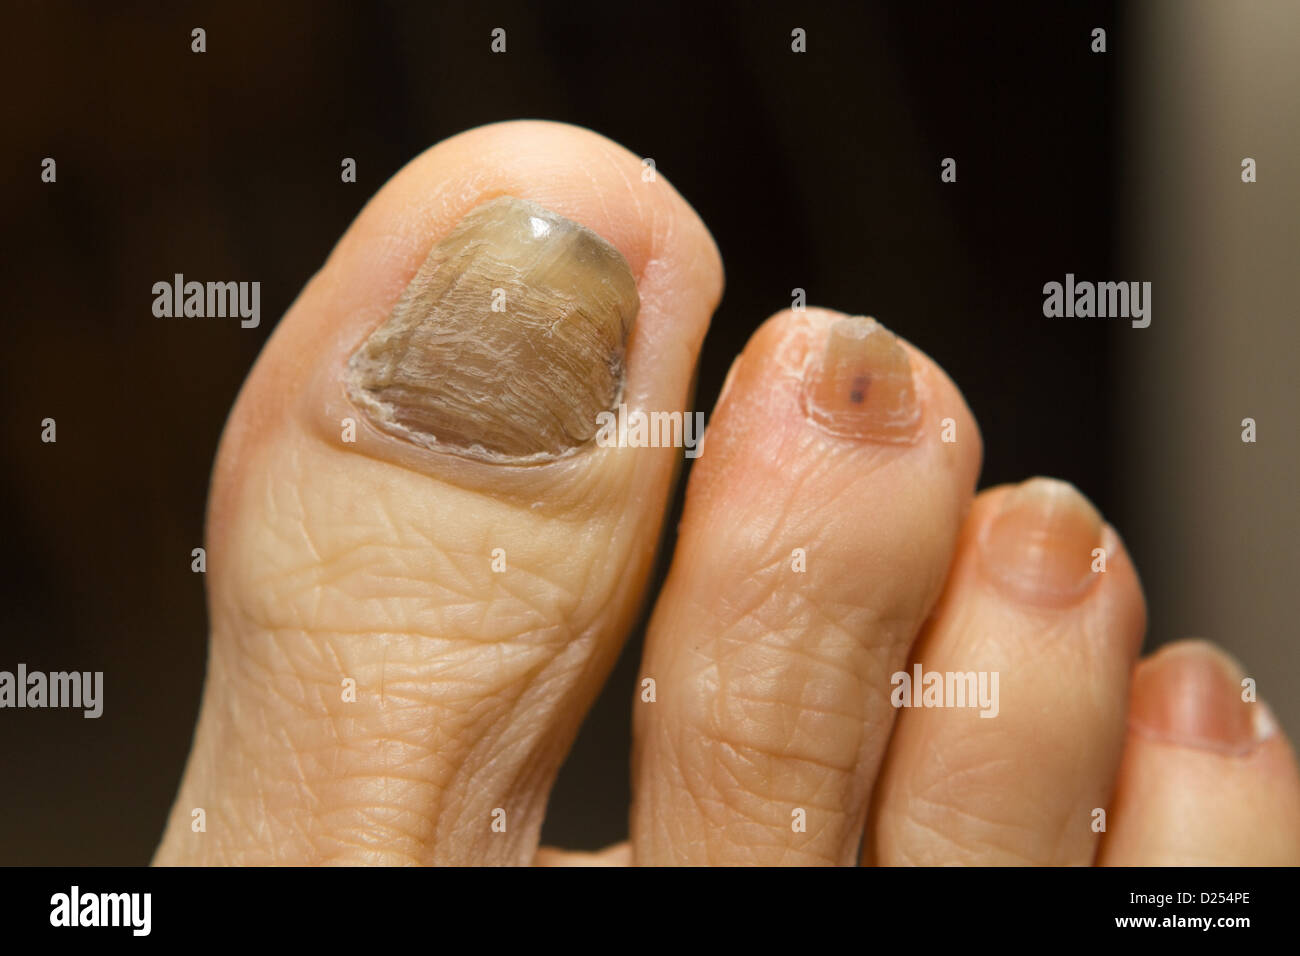 Ridged, thick and discolored toenail with fungus, a side effect ...